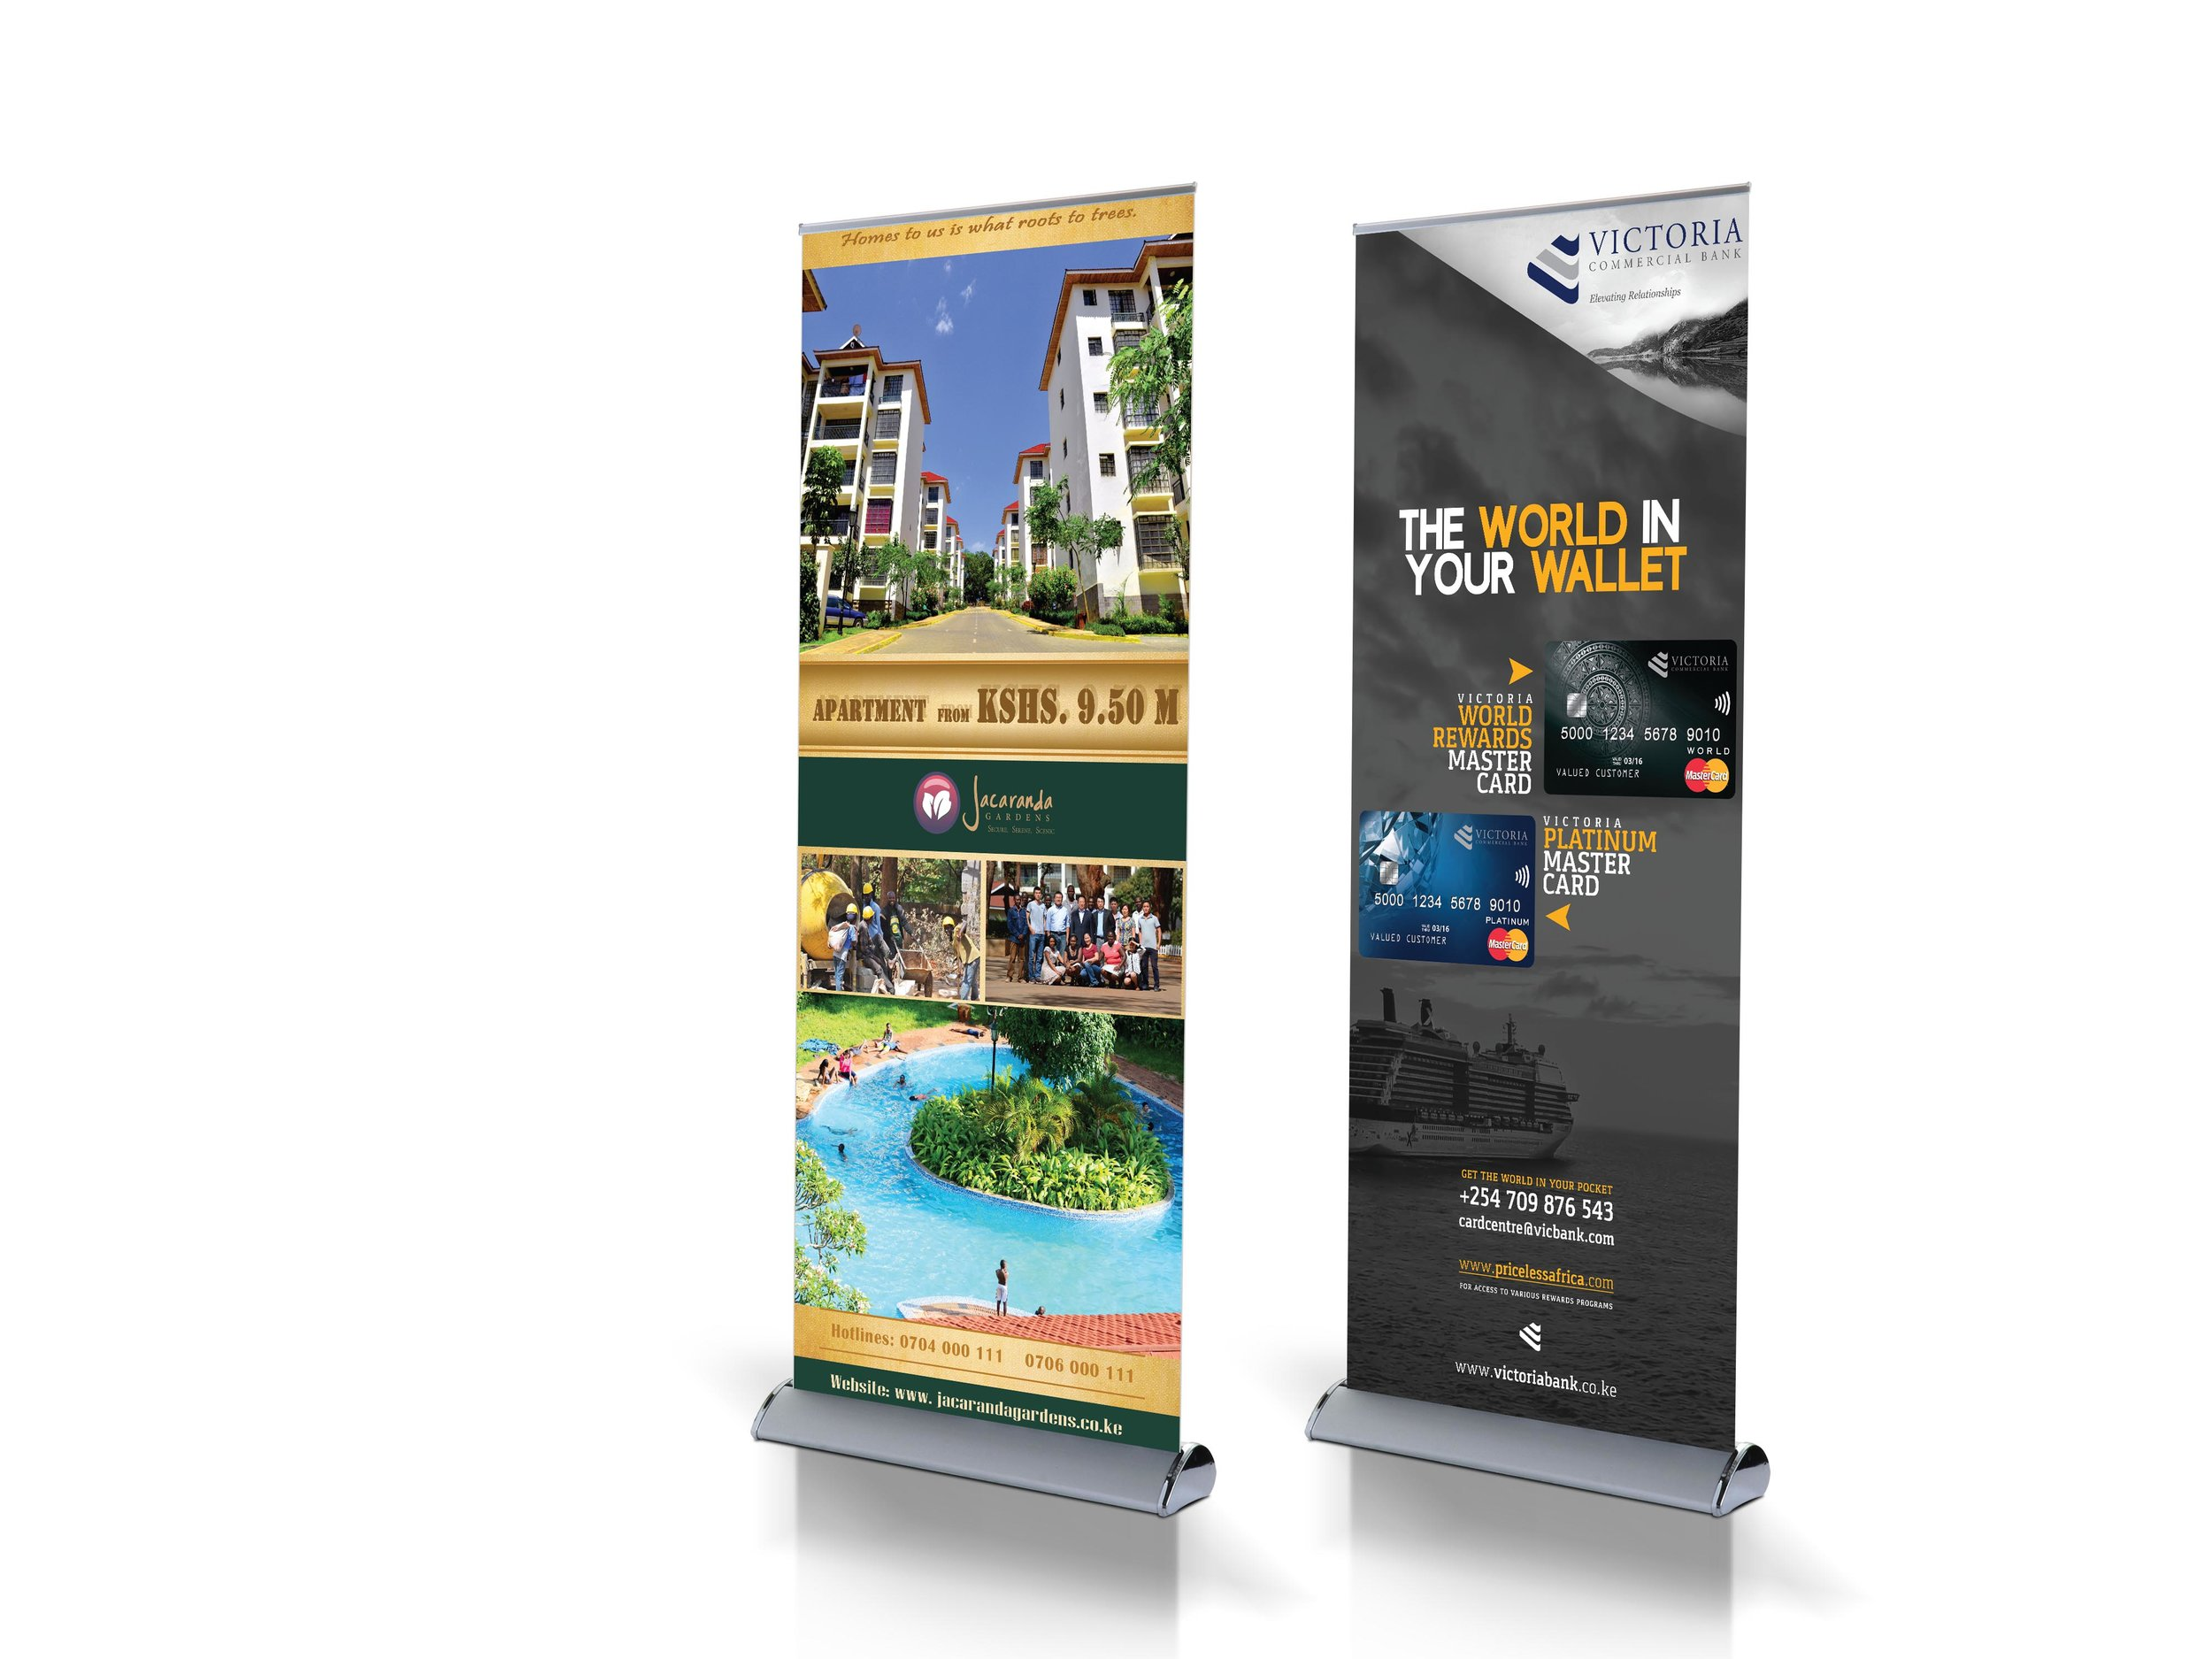 Vectogravic - Trade Show Display Mockup.jpg